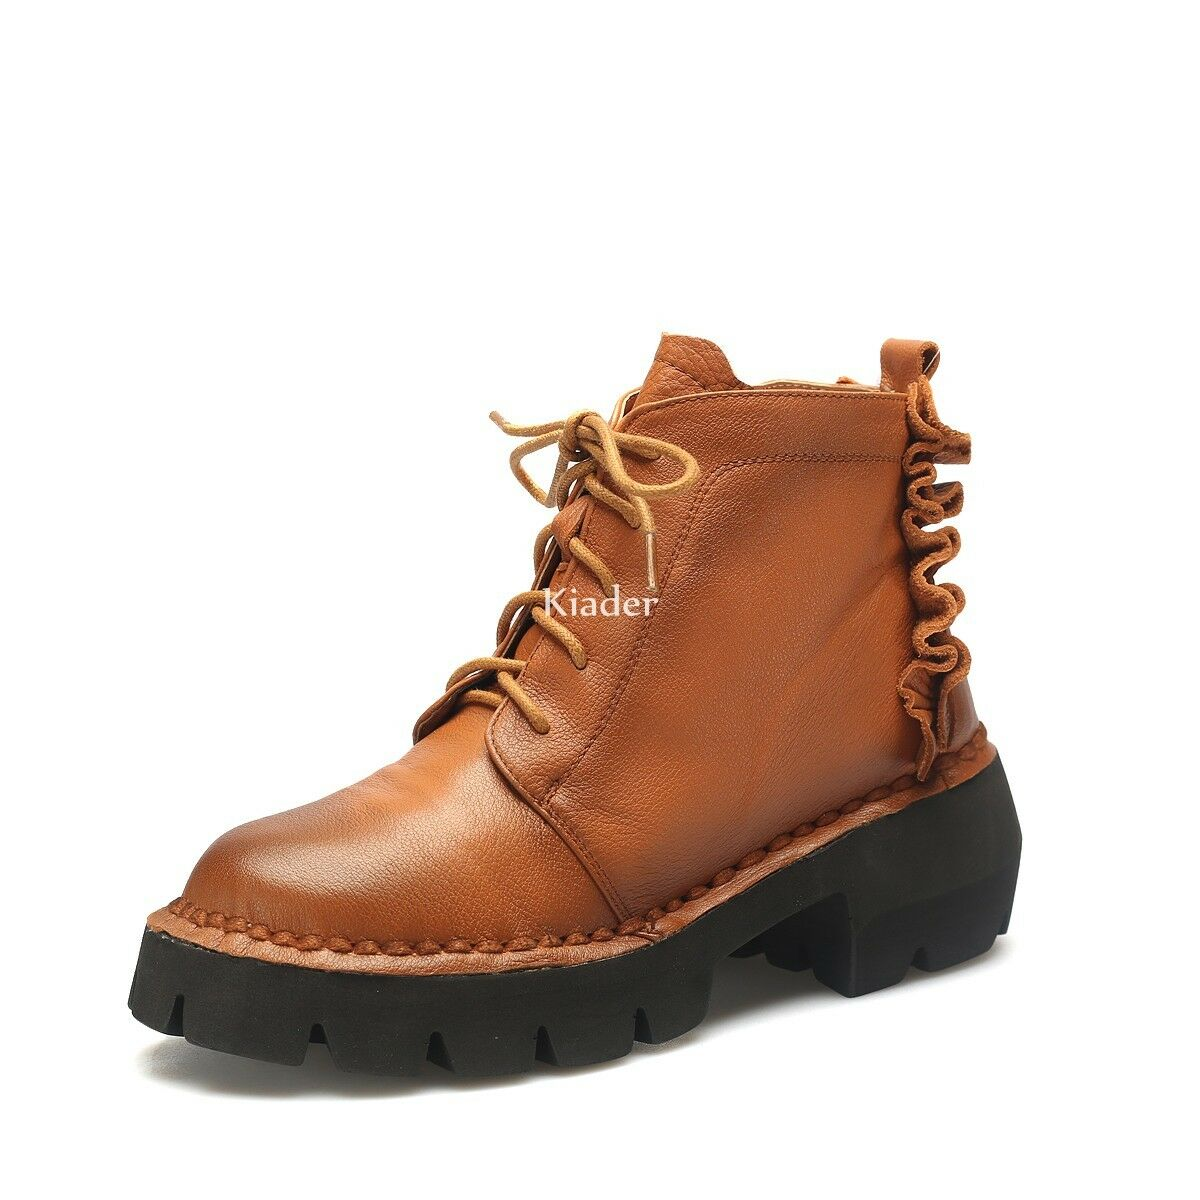 Fashion Womens Real Leather Comfort Lace Up Comfort Ankle boots Casual shoes NEW